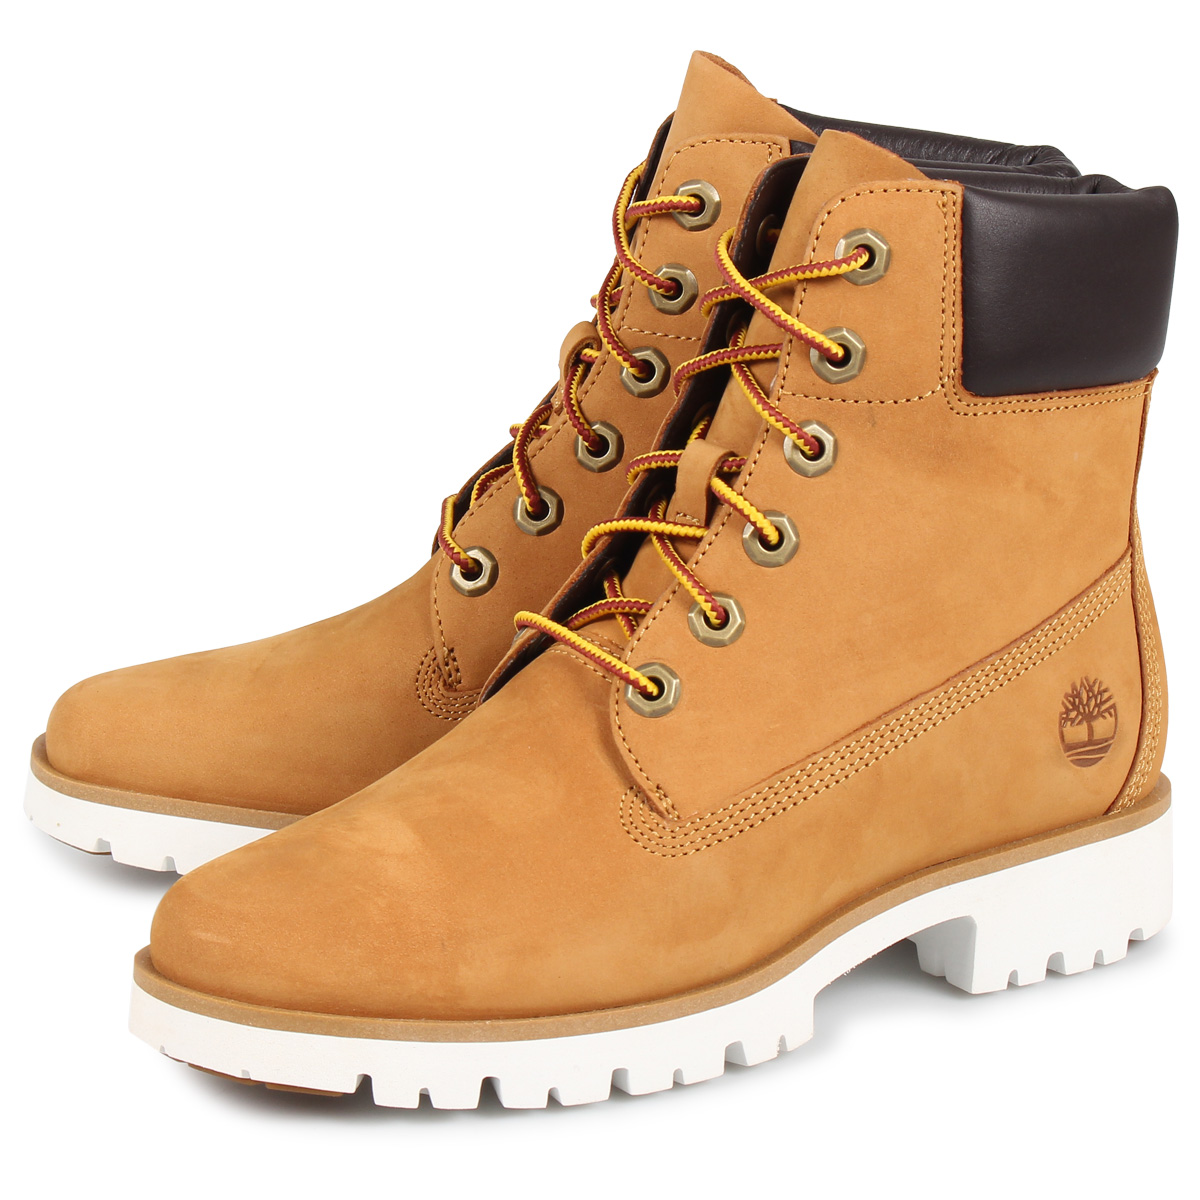 Timberland WOMENS CLASSIC LIGHT 6INCH BOOTS Timberland boots Lady's 6 インチクラシックライトウィート A1VXN